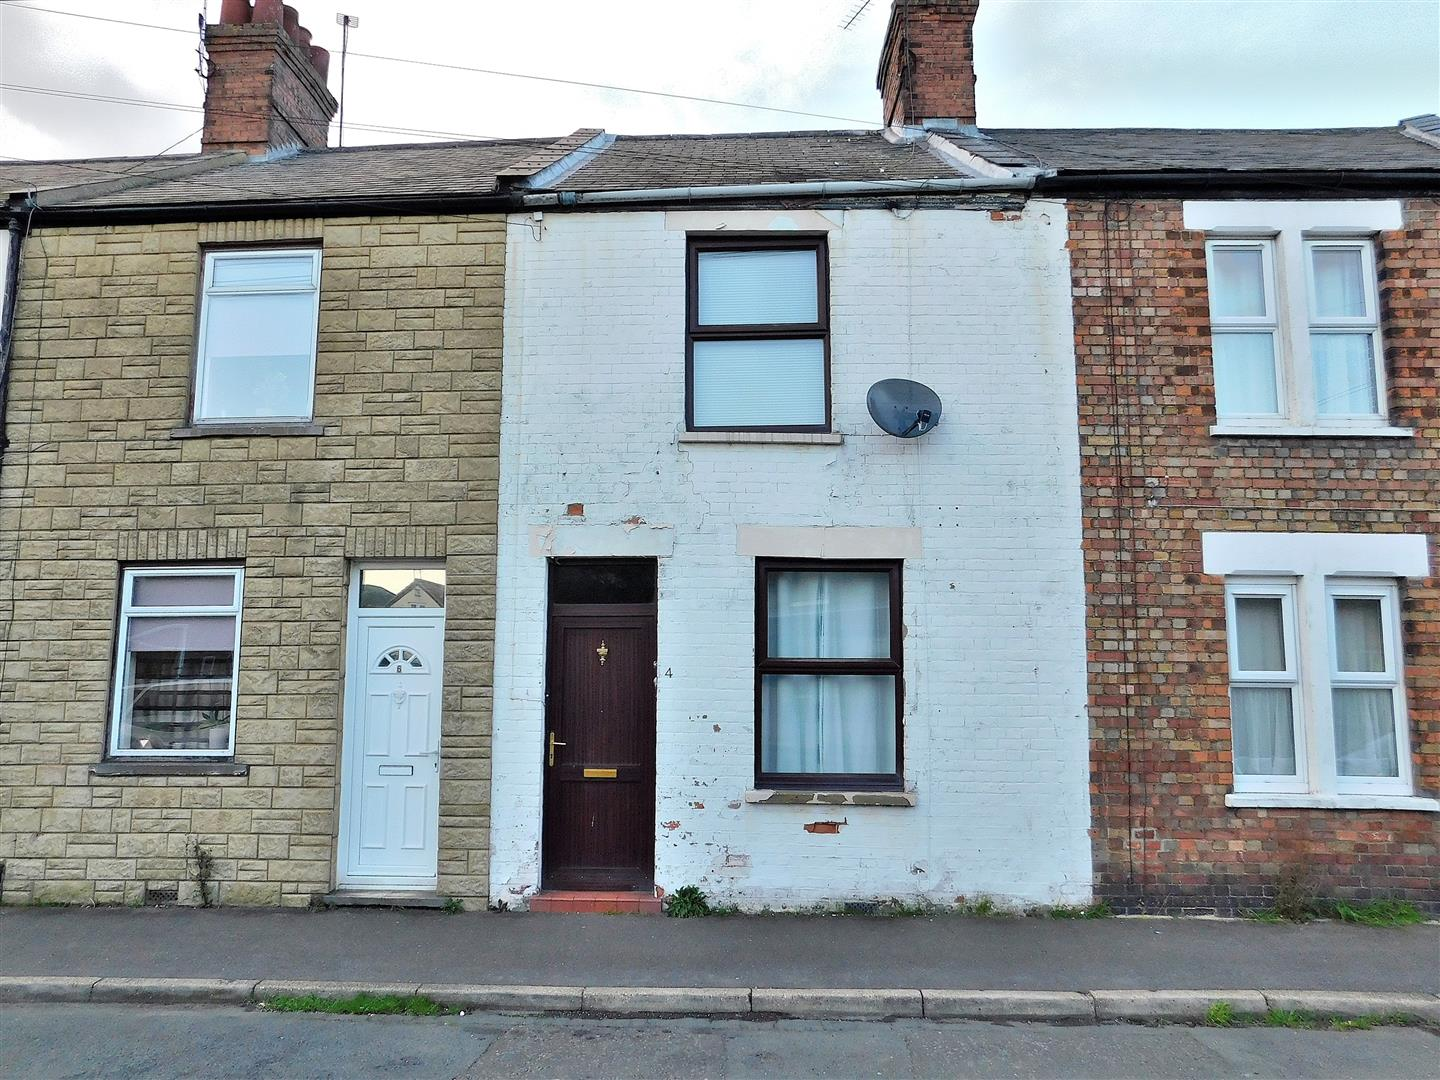 2 bed terraced house for sale in King's Lynn, PE30 5LT, PE30